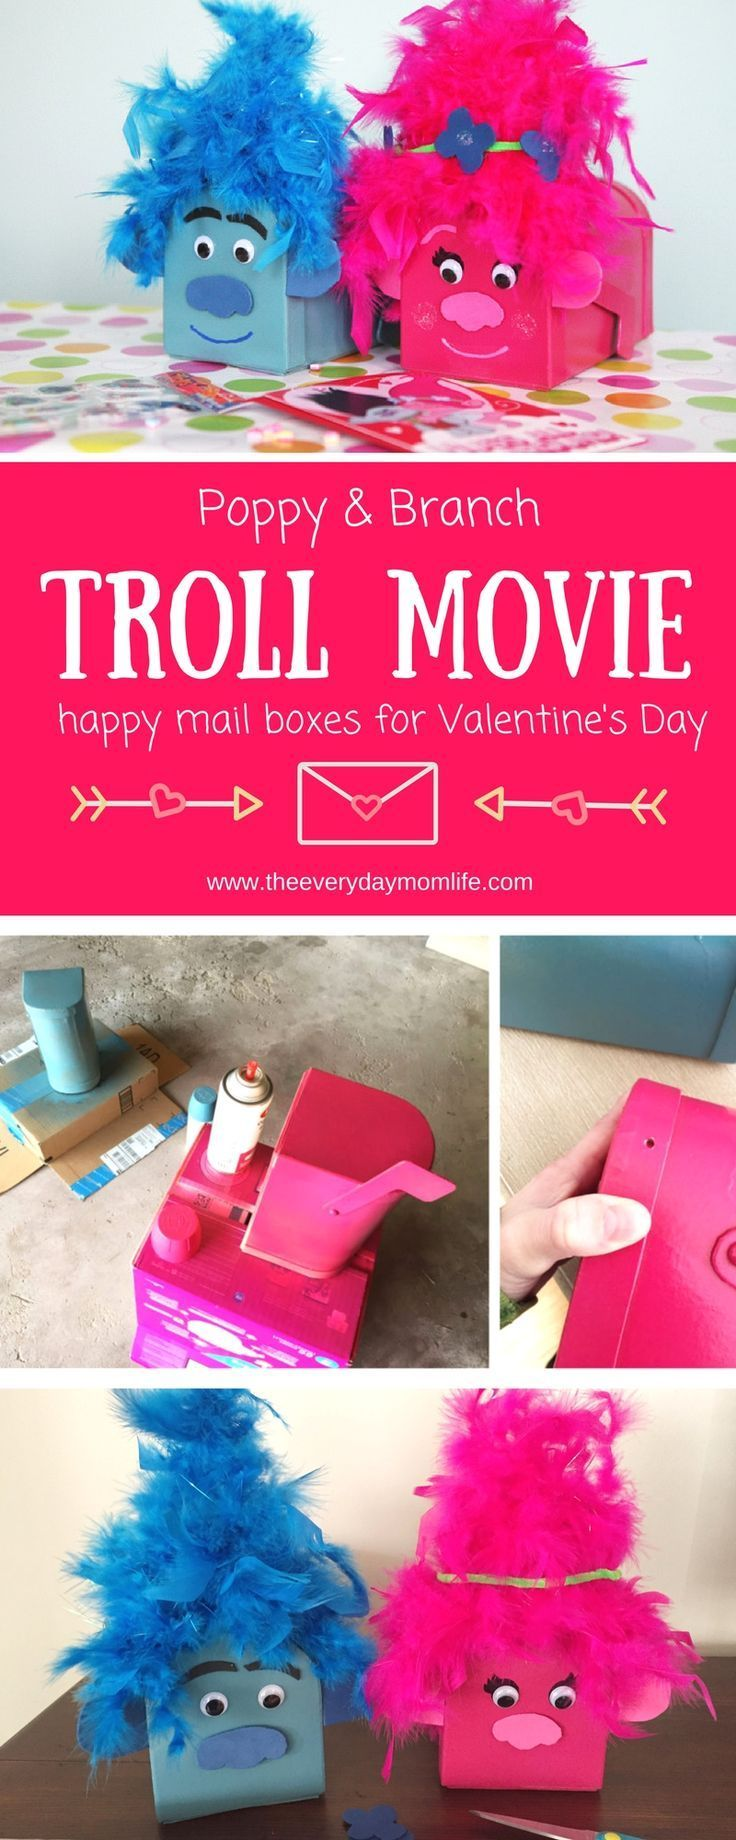 troll movie card boxes for happy mail full of love | *kid friendly